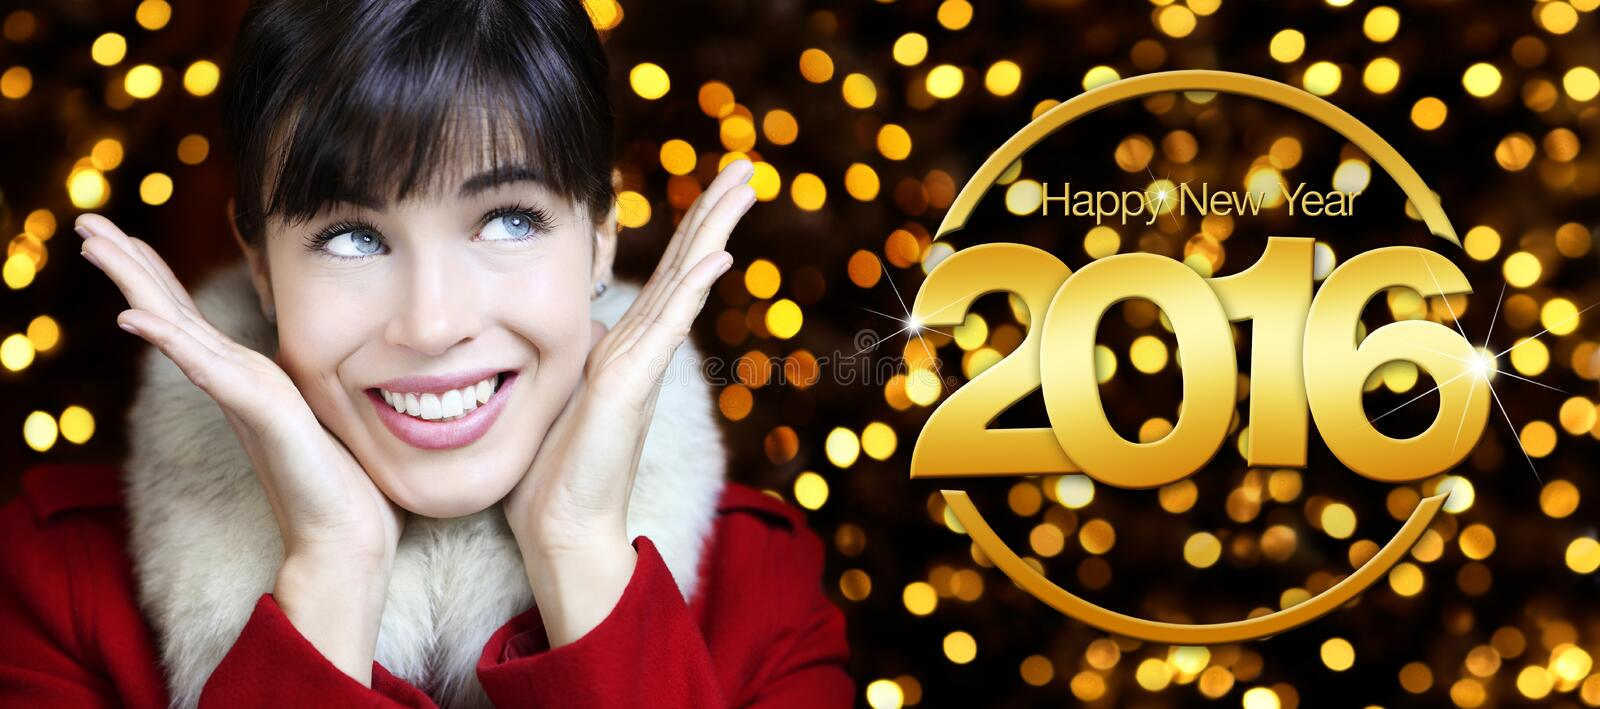 Happy new year 2016, woman looks up on lights background. Happy new year 2016 golden text, woman looks up on lights glitter background stock image